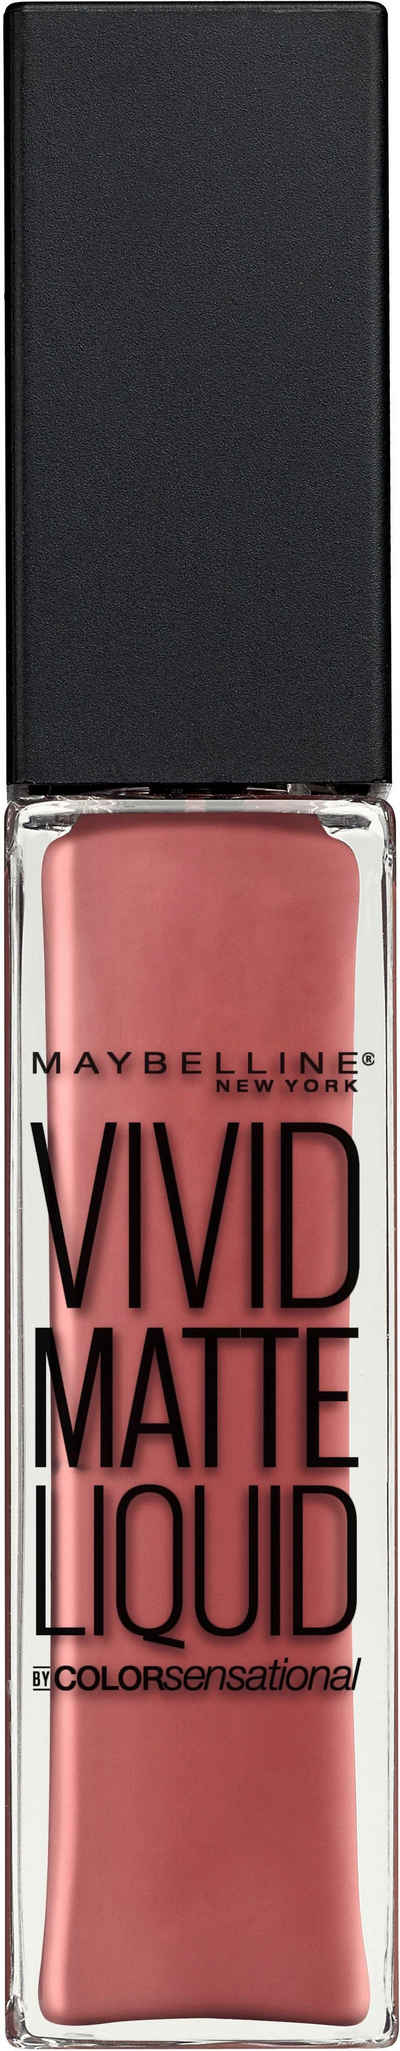 Maybelline New York, »Vivid Matte Liquid Lipstick«, Губная Помада